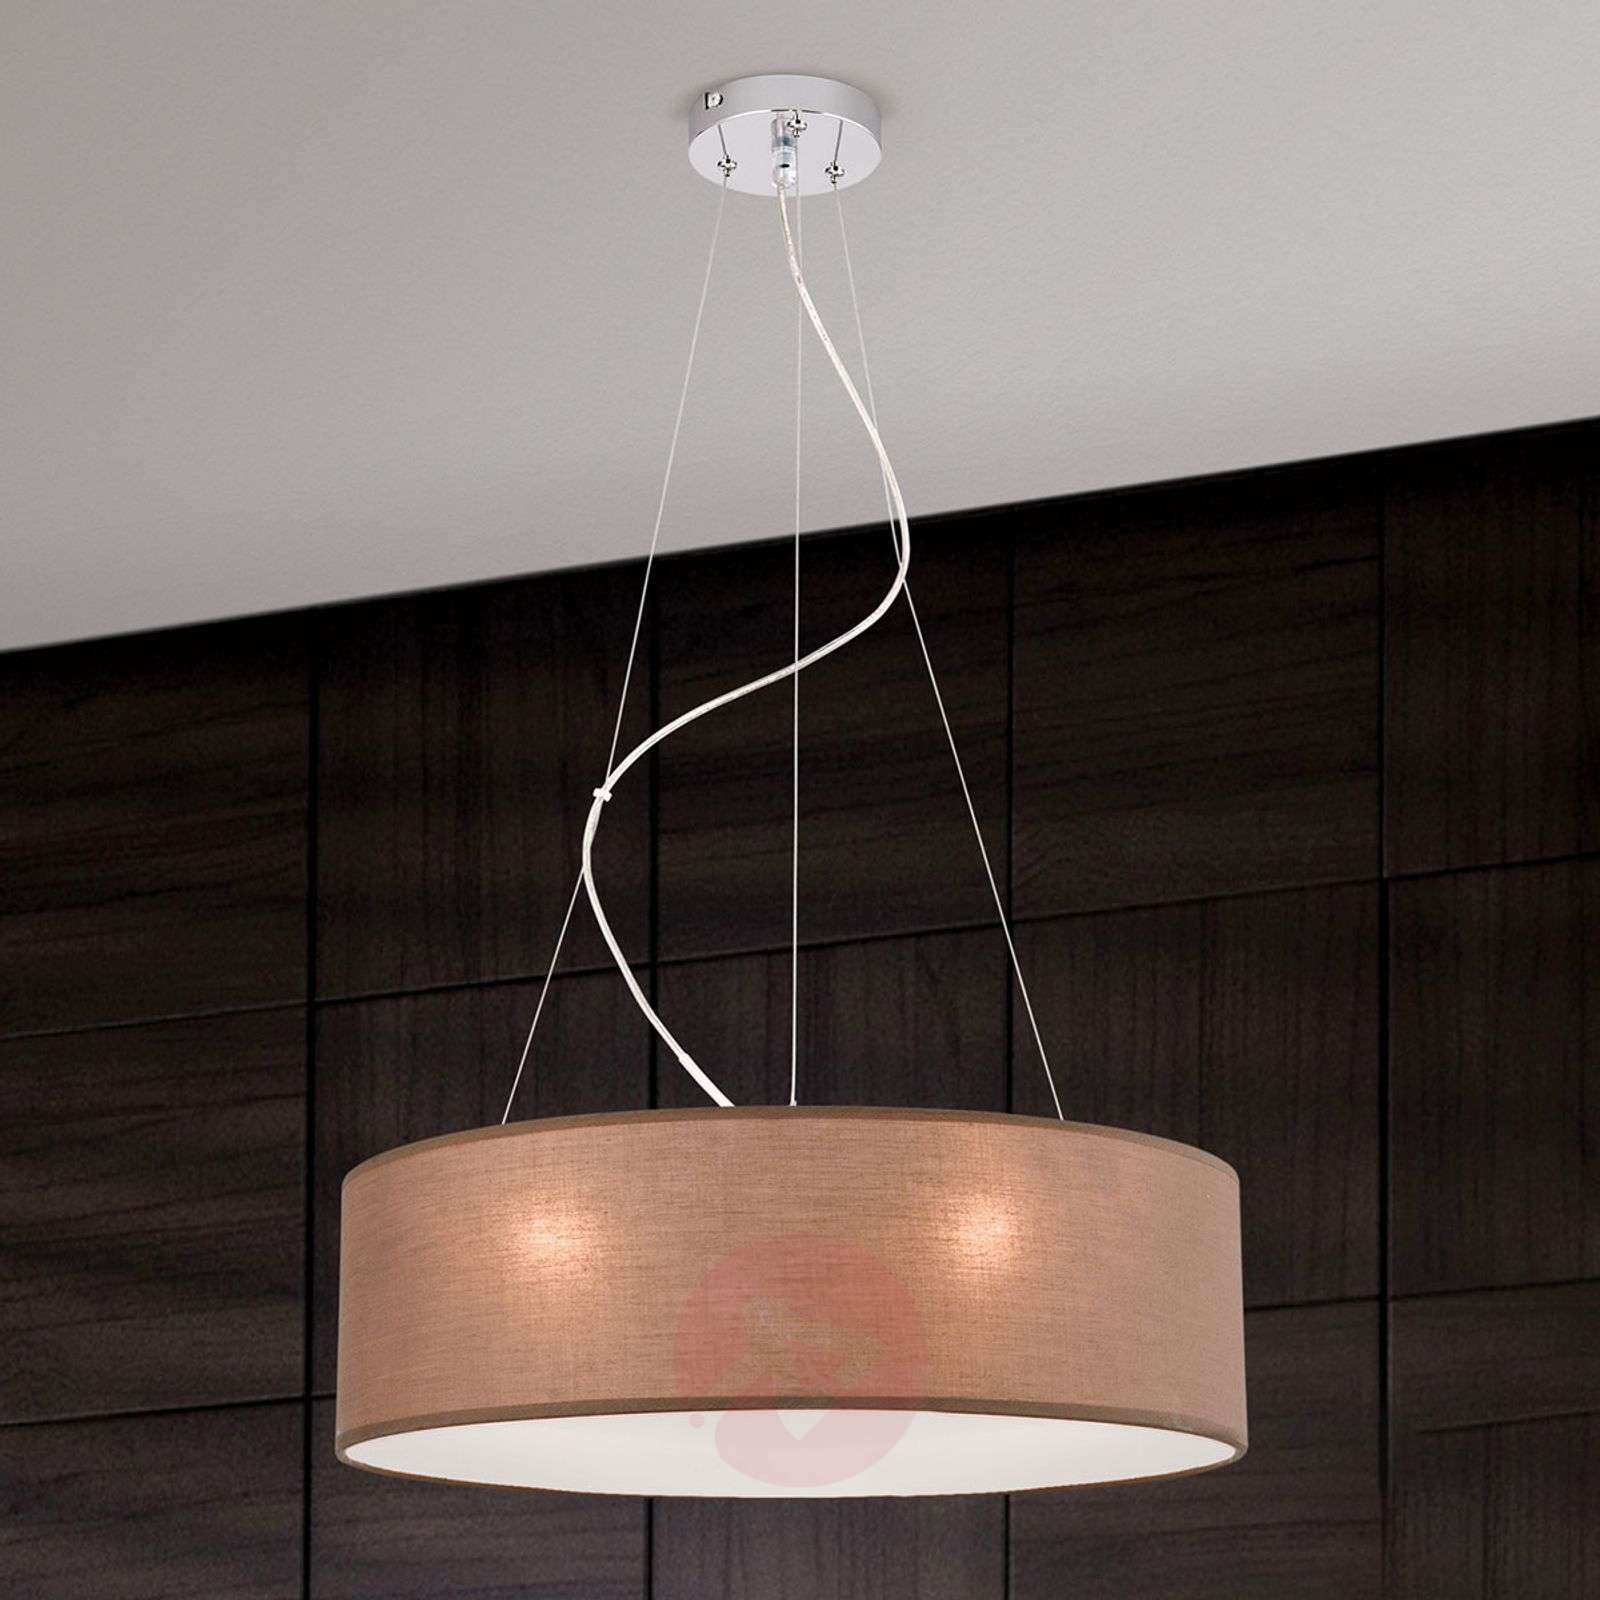 Brown pendant light Ufo with a linen lampshade-7255353-01